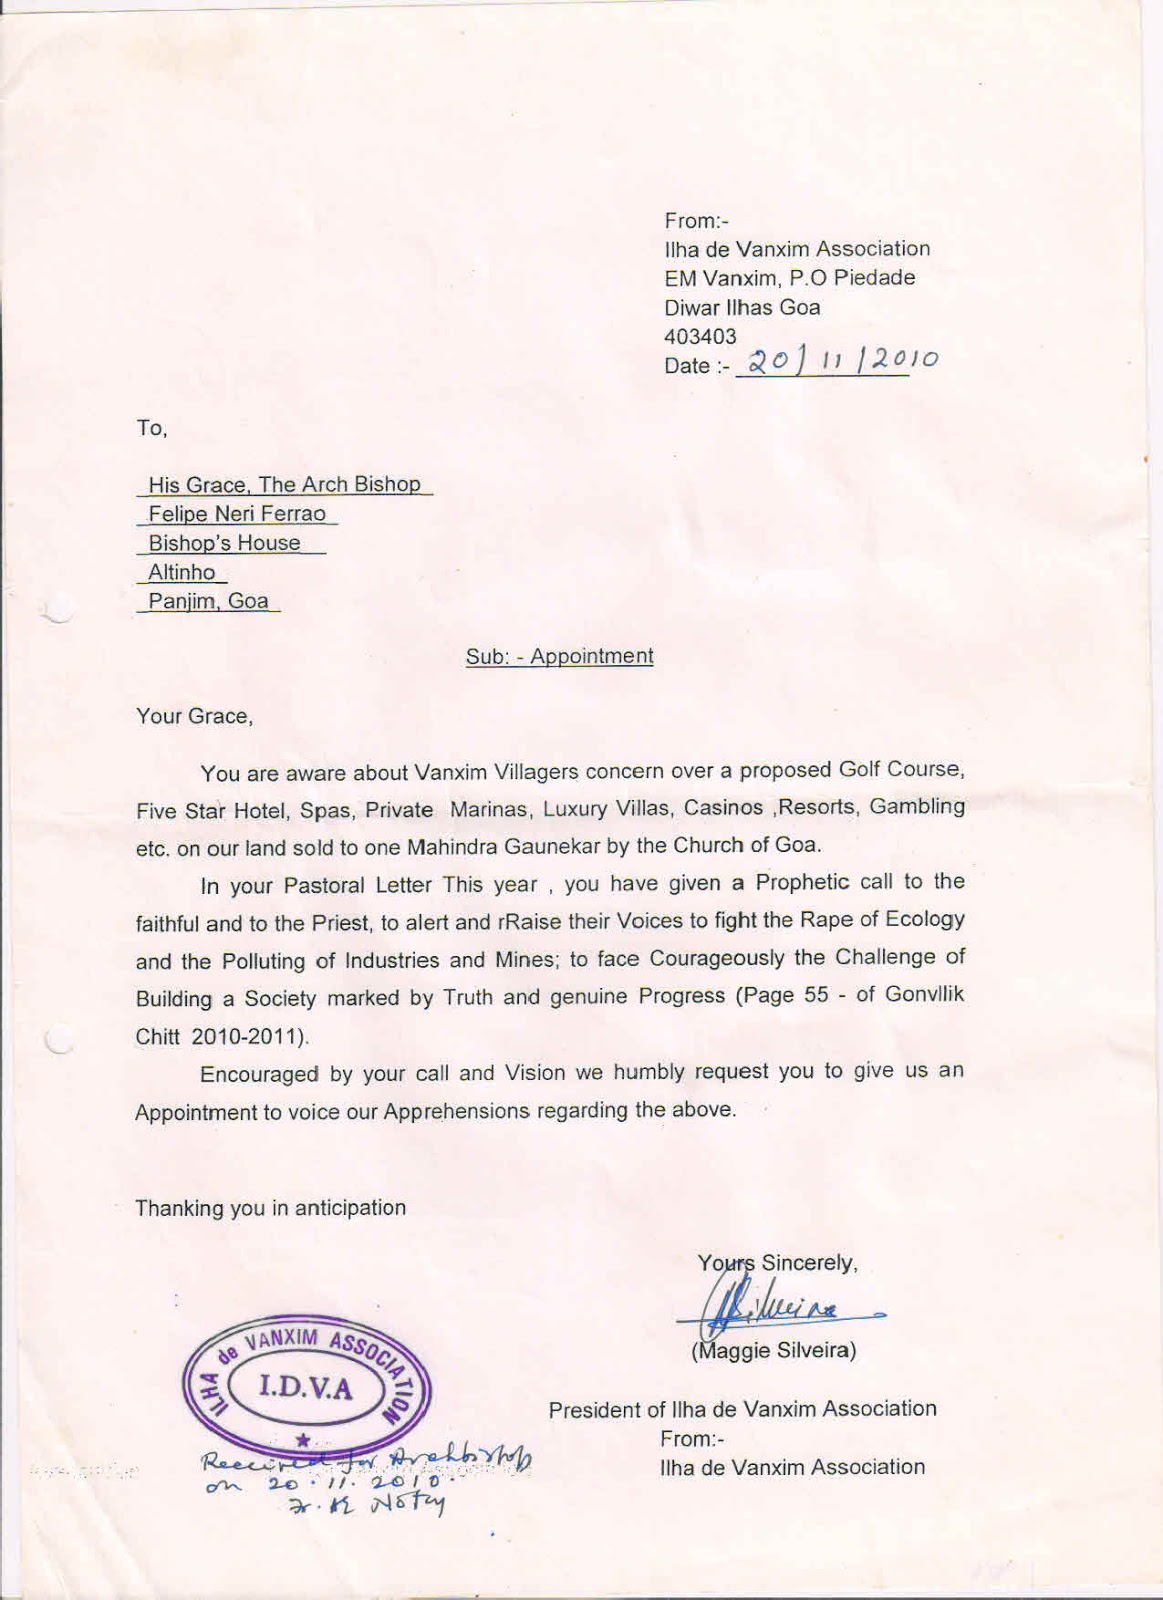 bharat mukti morcha 2010 letter seeking appointment goa 2010 letter seeking appointment goa archbishop